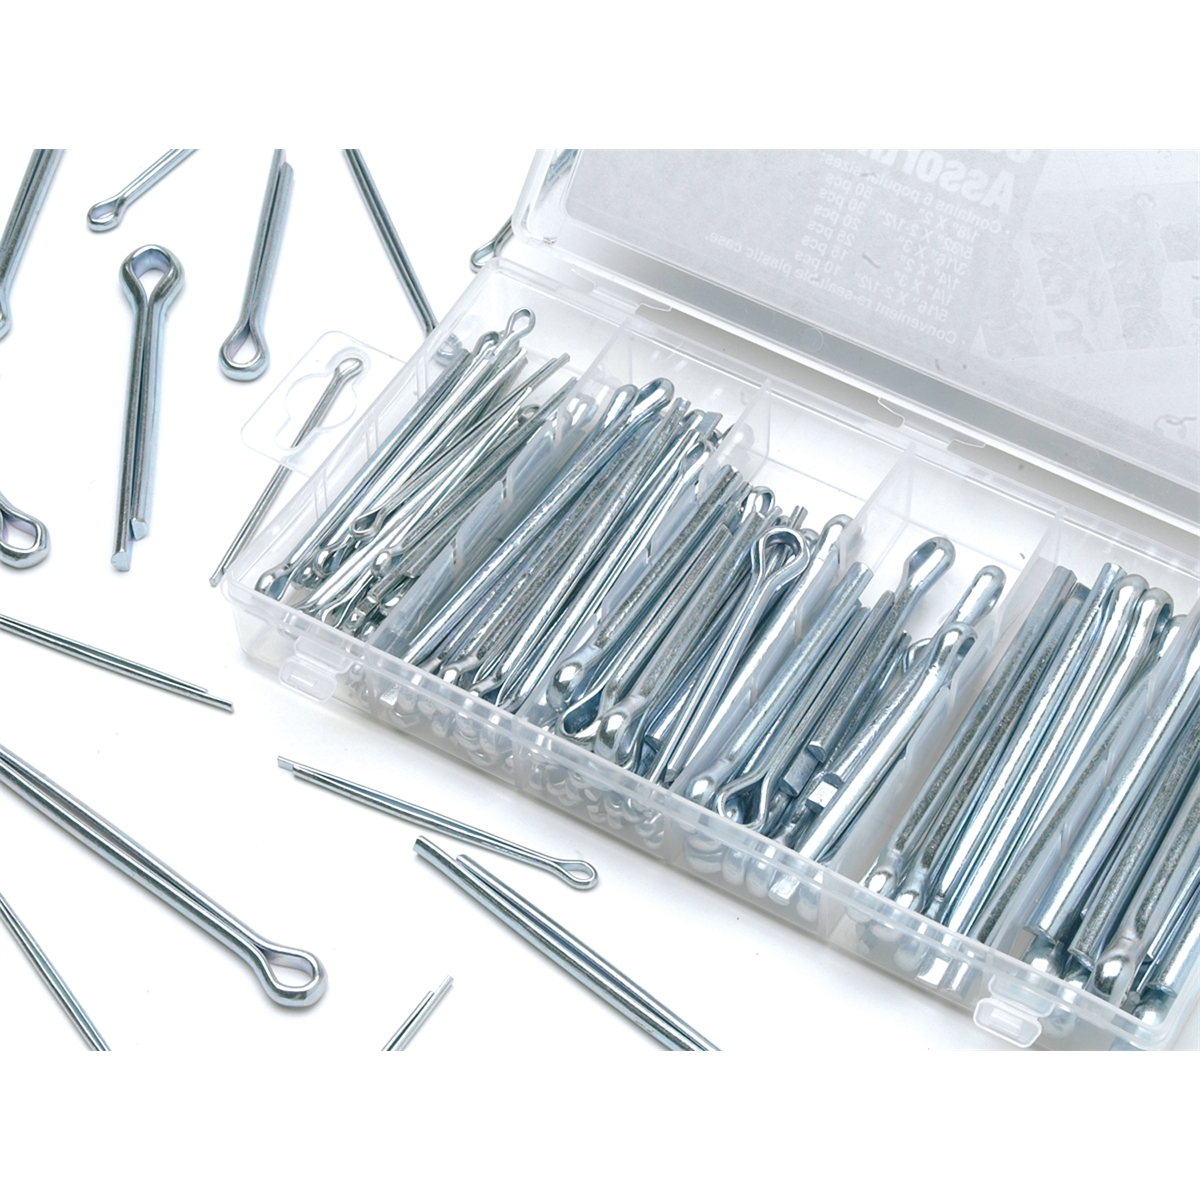 150 Pc. Large Cotter Pin Hardware Kit